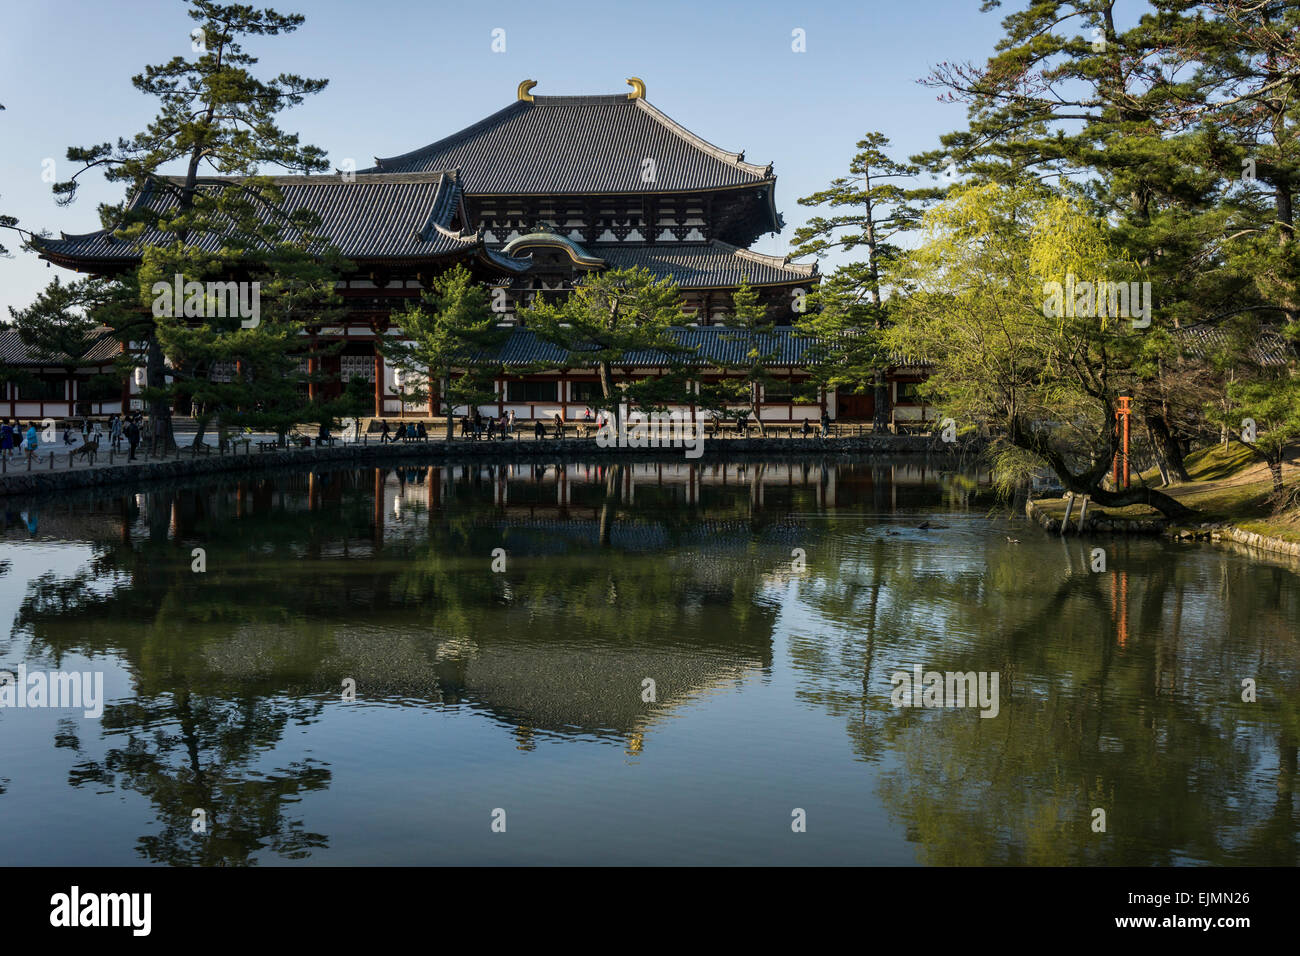 Panoramic view across a lake of Todaiji Temple in Nara, Japan on a spring afternoon - Stock Image